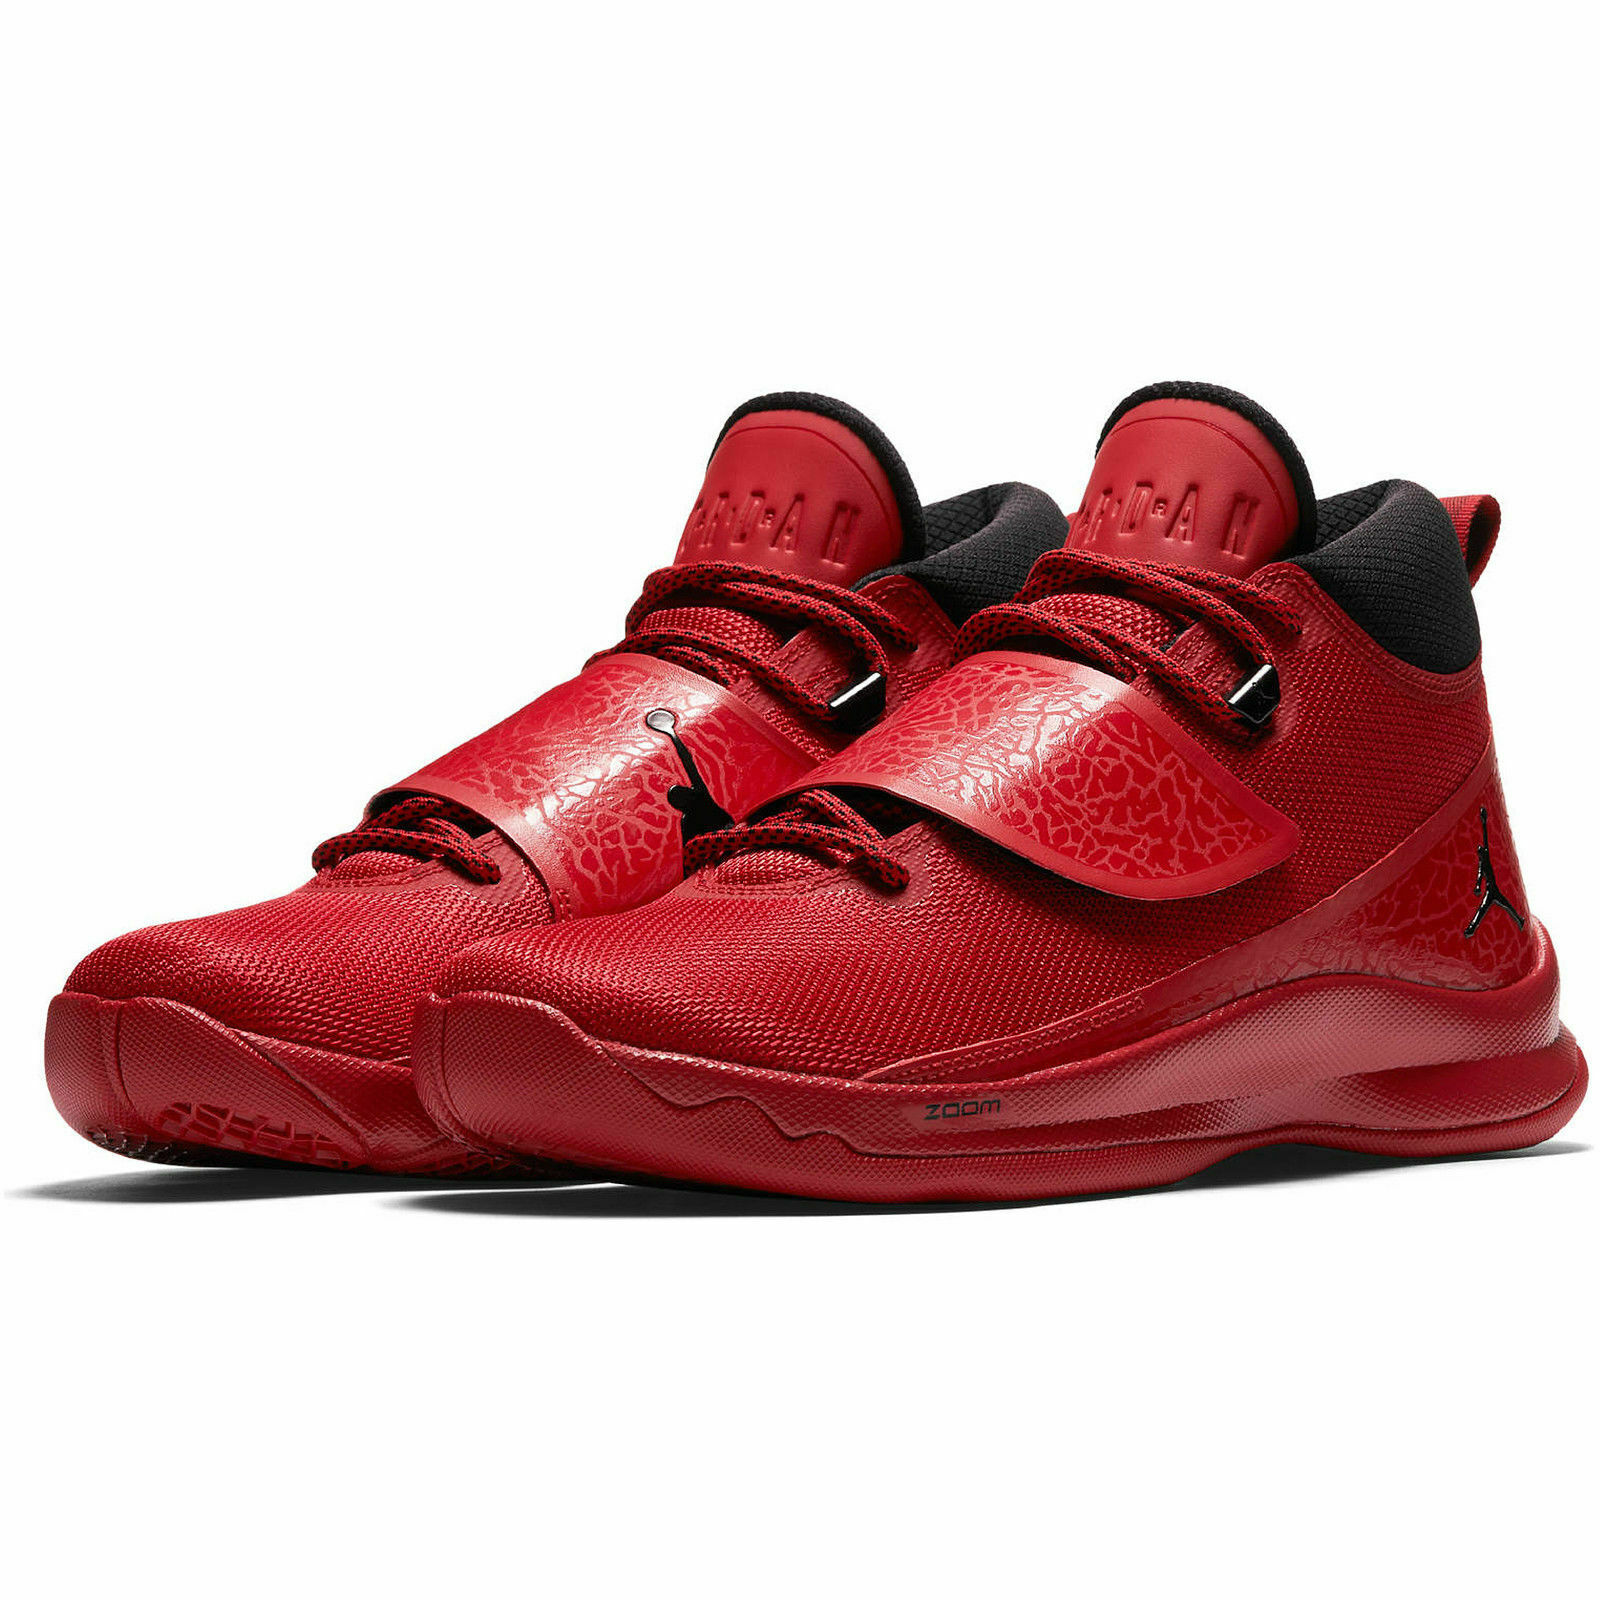 NEW  Nike Men's Jordan Super Fly 5 Basketball shoes Gym Red Black Size 17  51.5